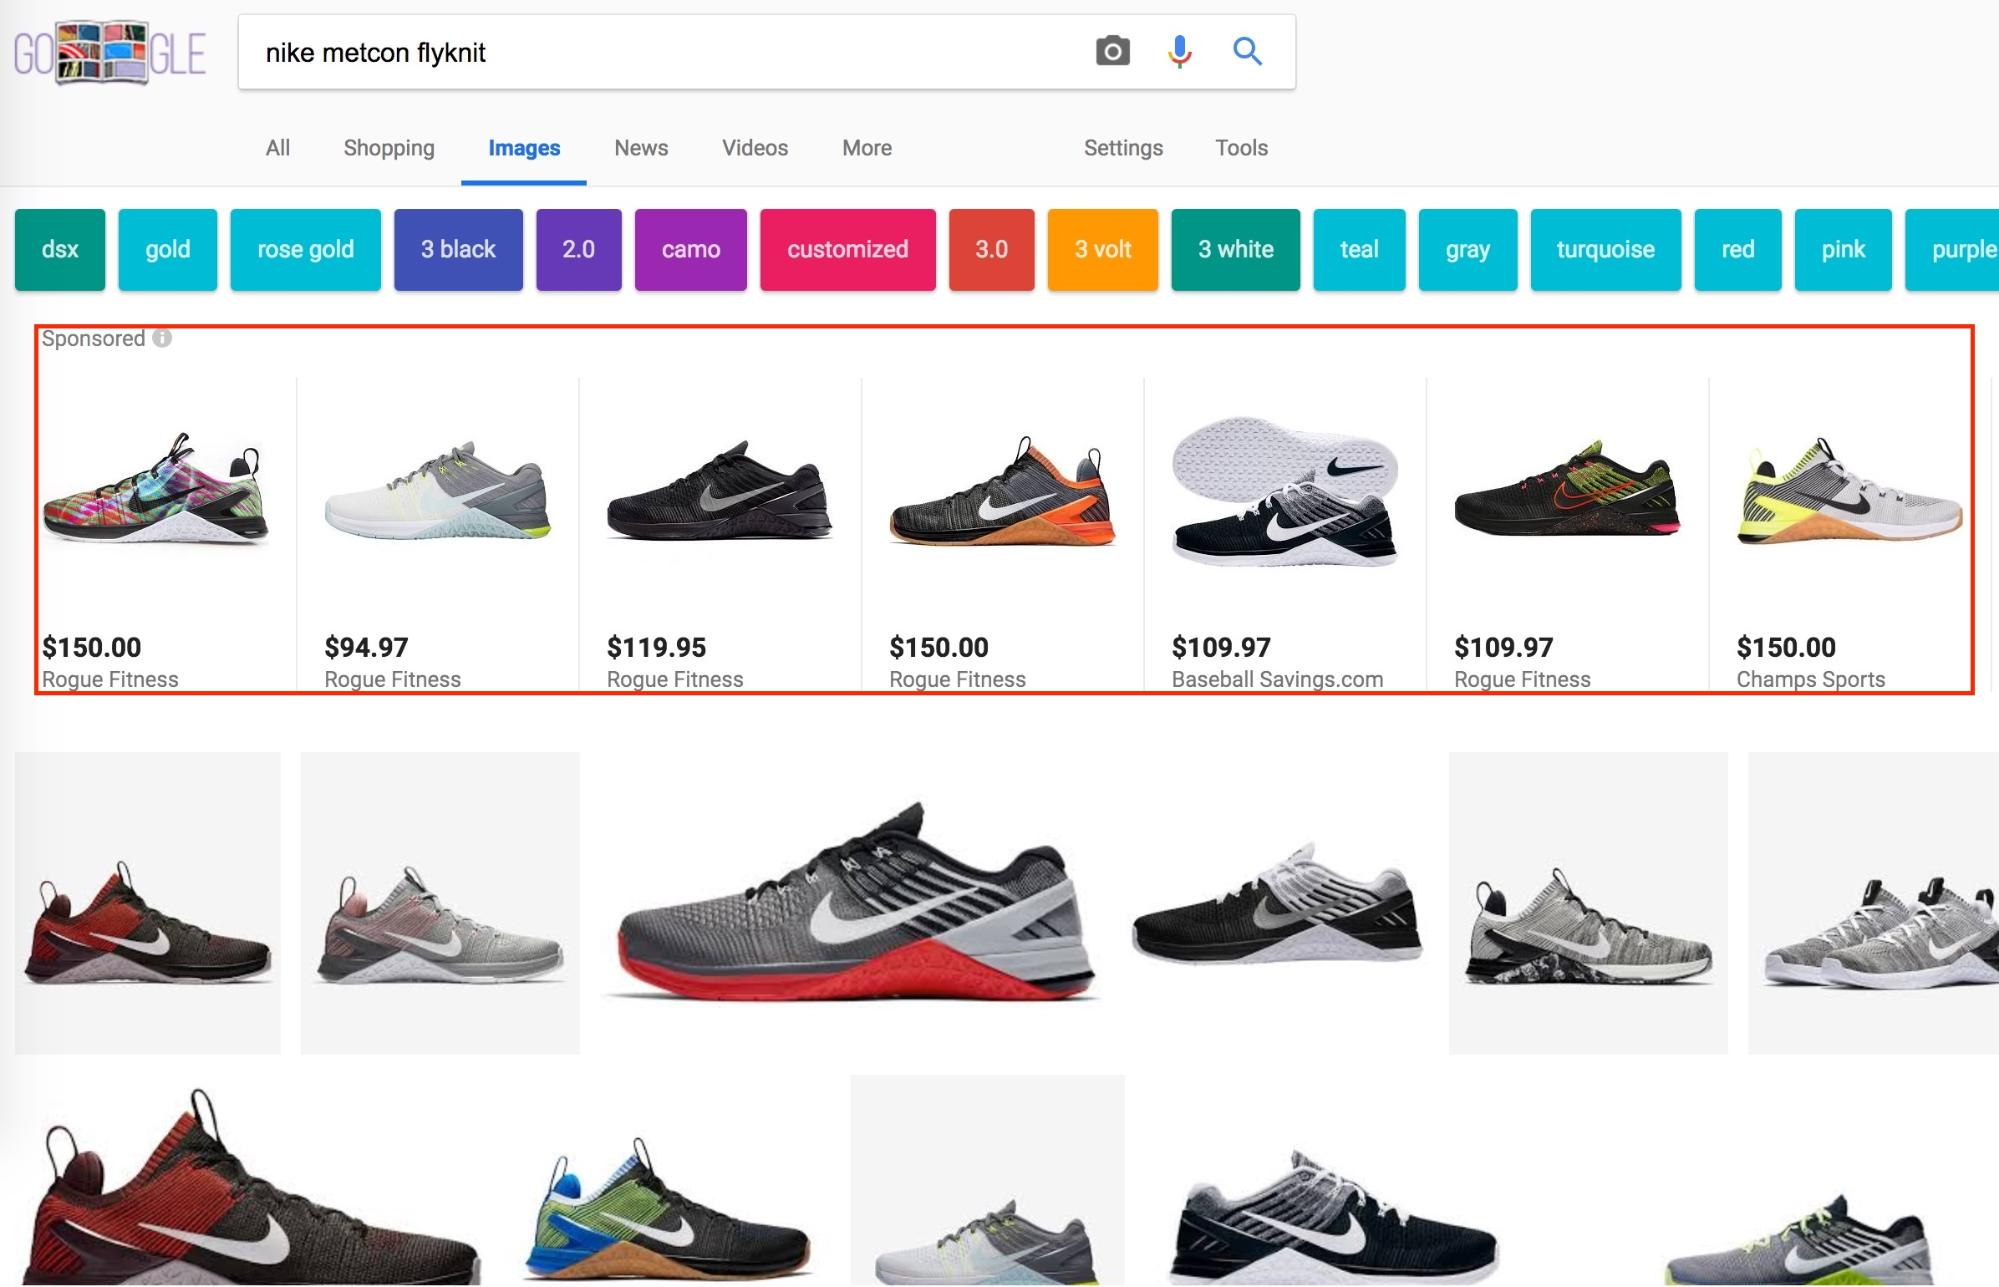 Screenshot showing google image search results